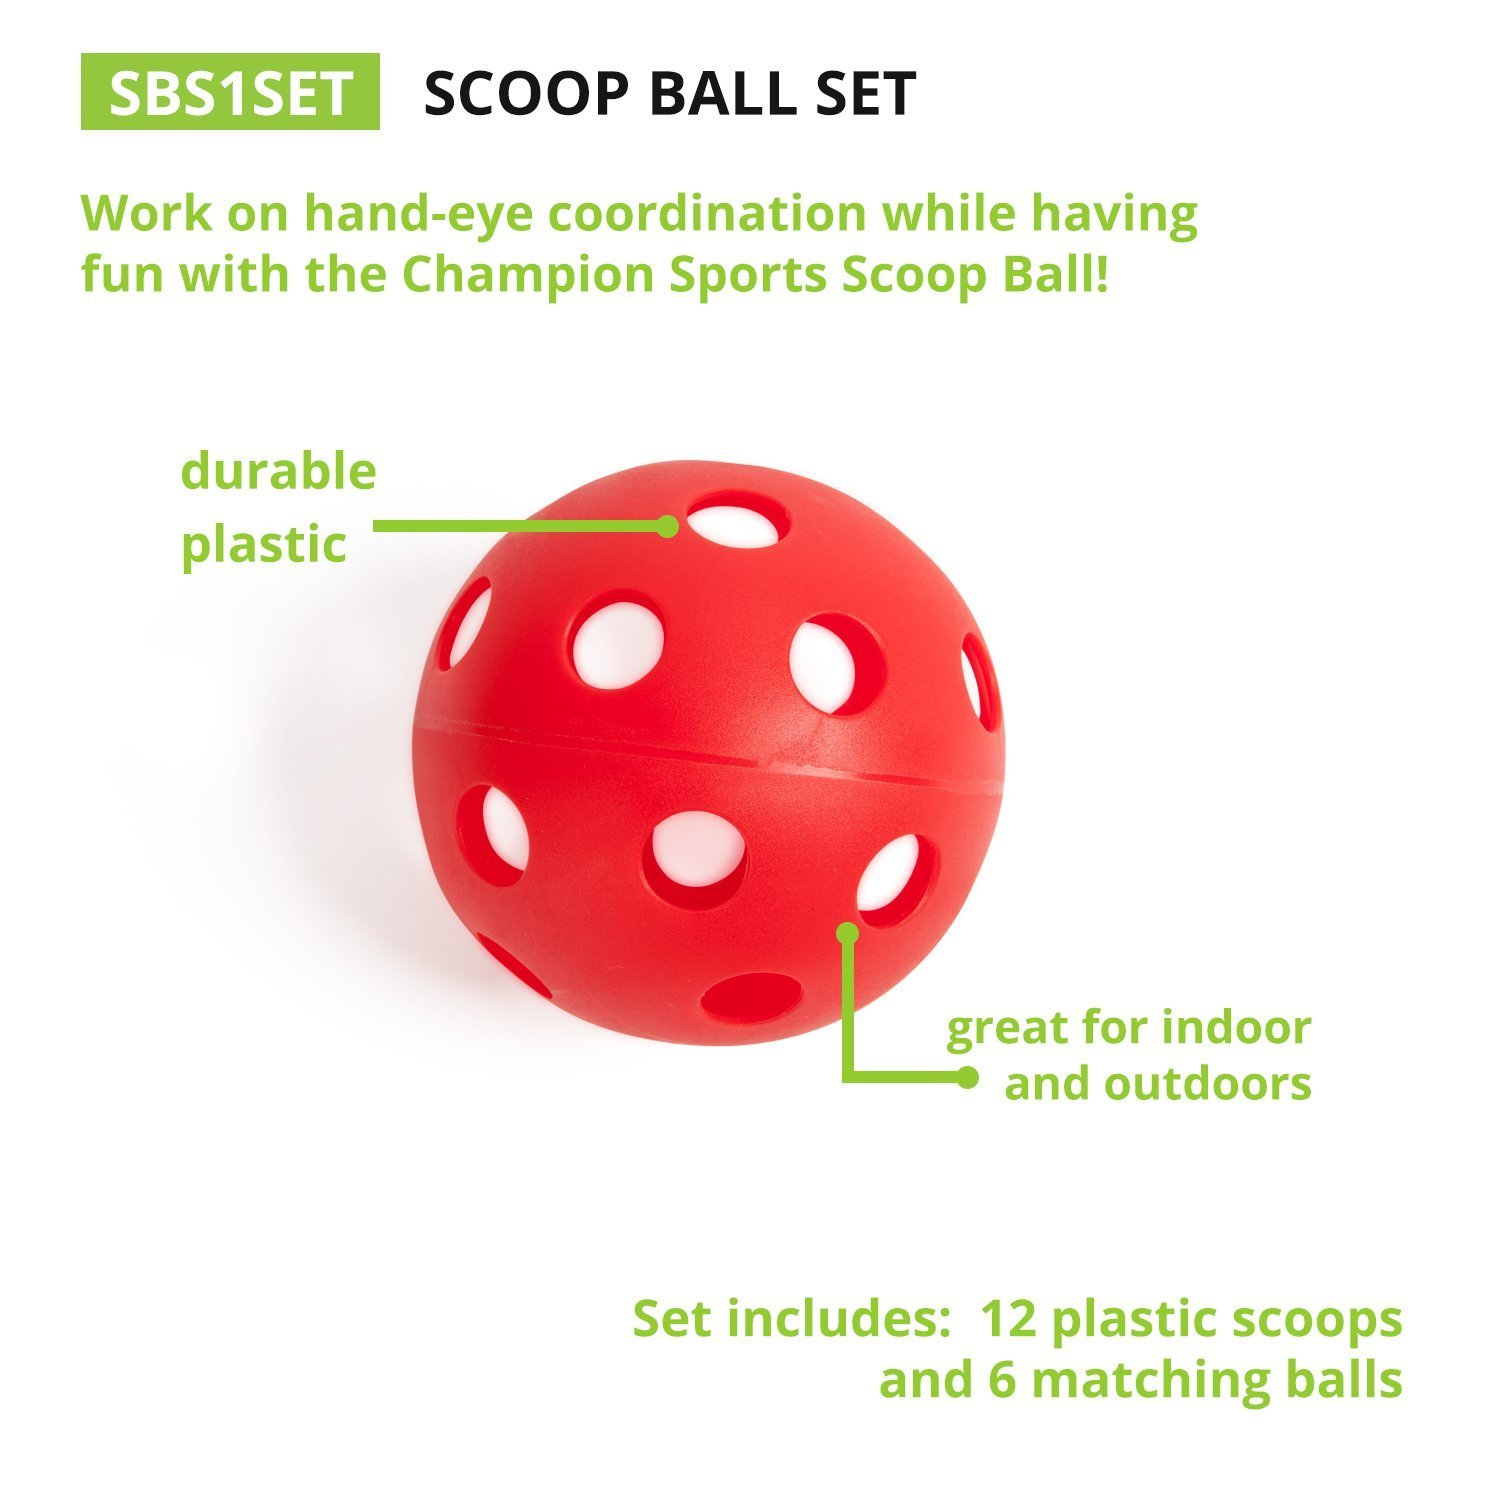 Champion Sports. Scoop Ball Set: Classic Outdoor Lawn Party & Kids Game in 6 Assorted Colors (Limited Edition) by Champion Sports. (Image #5)